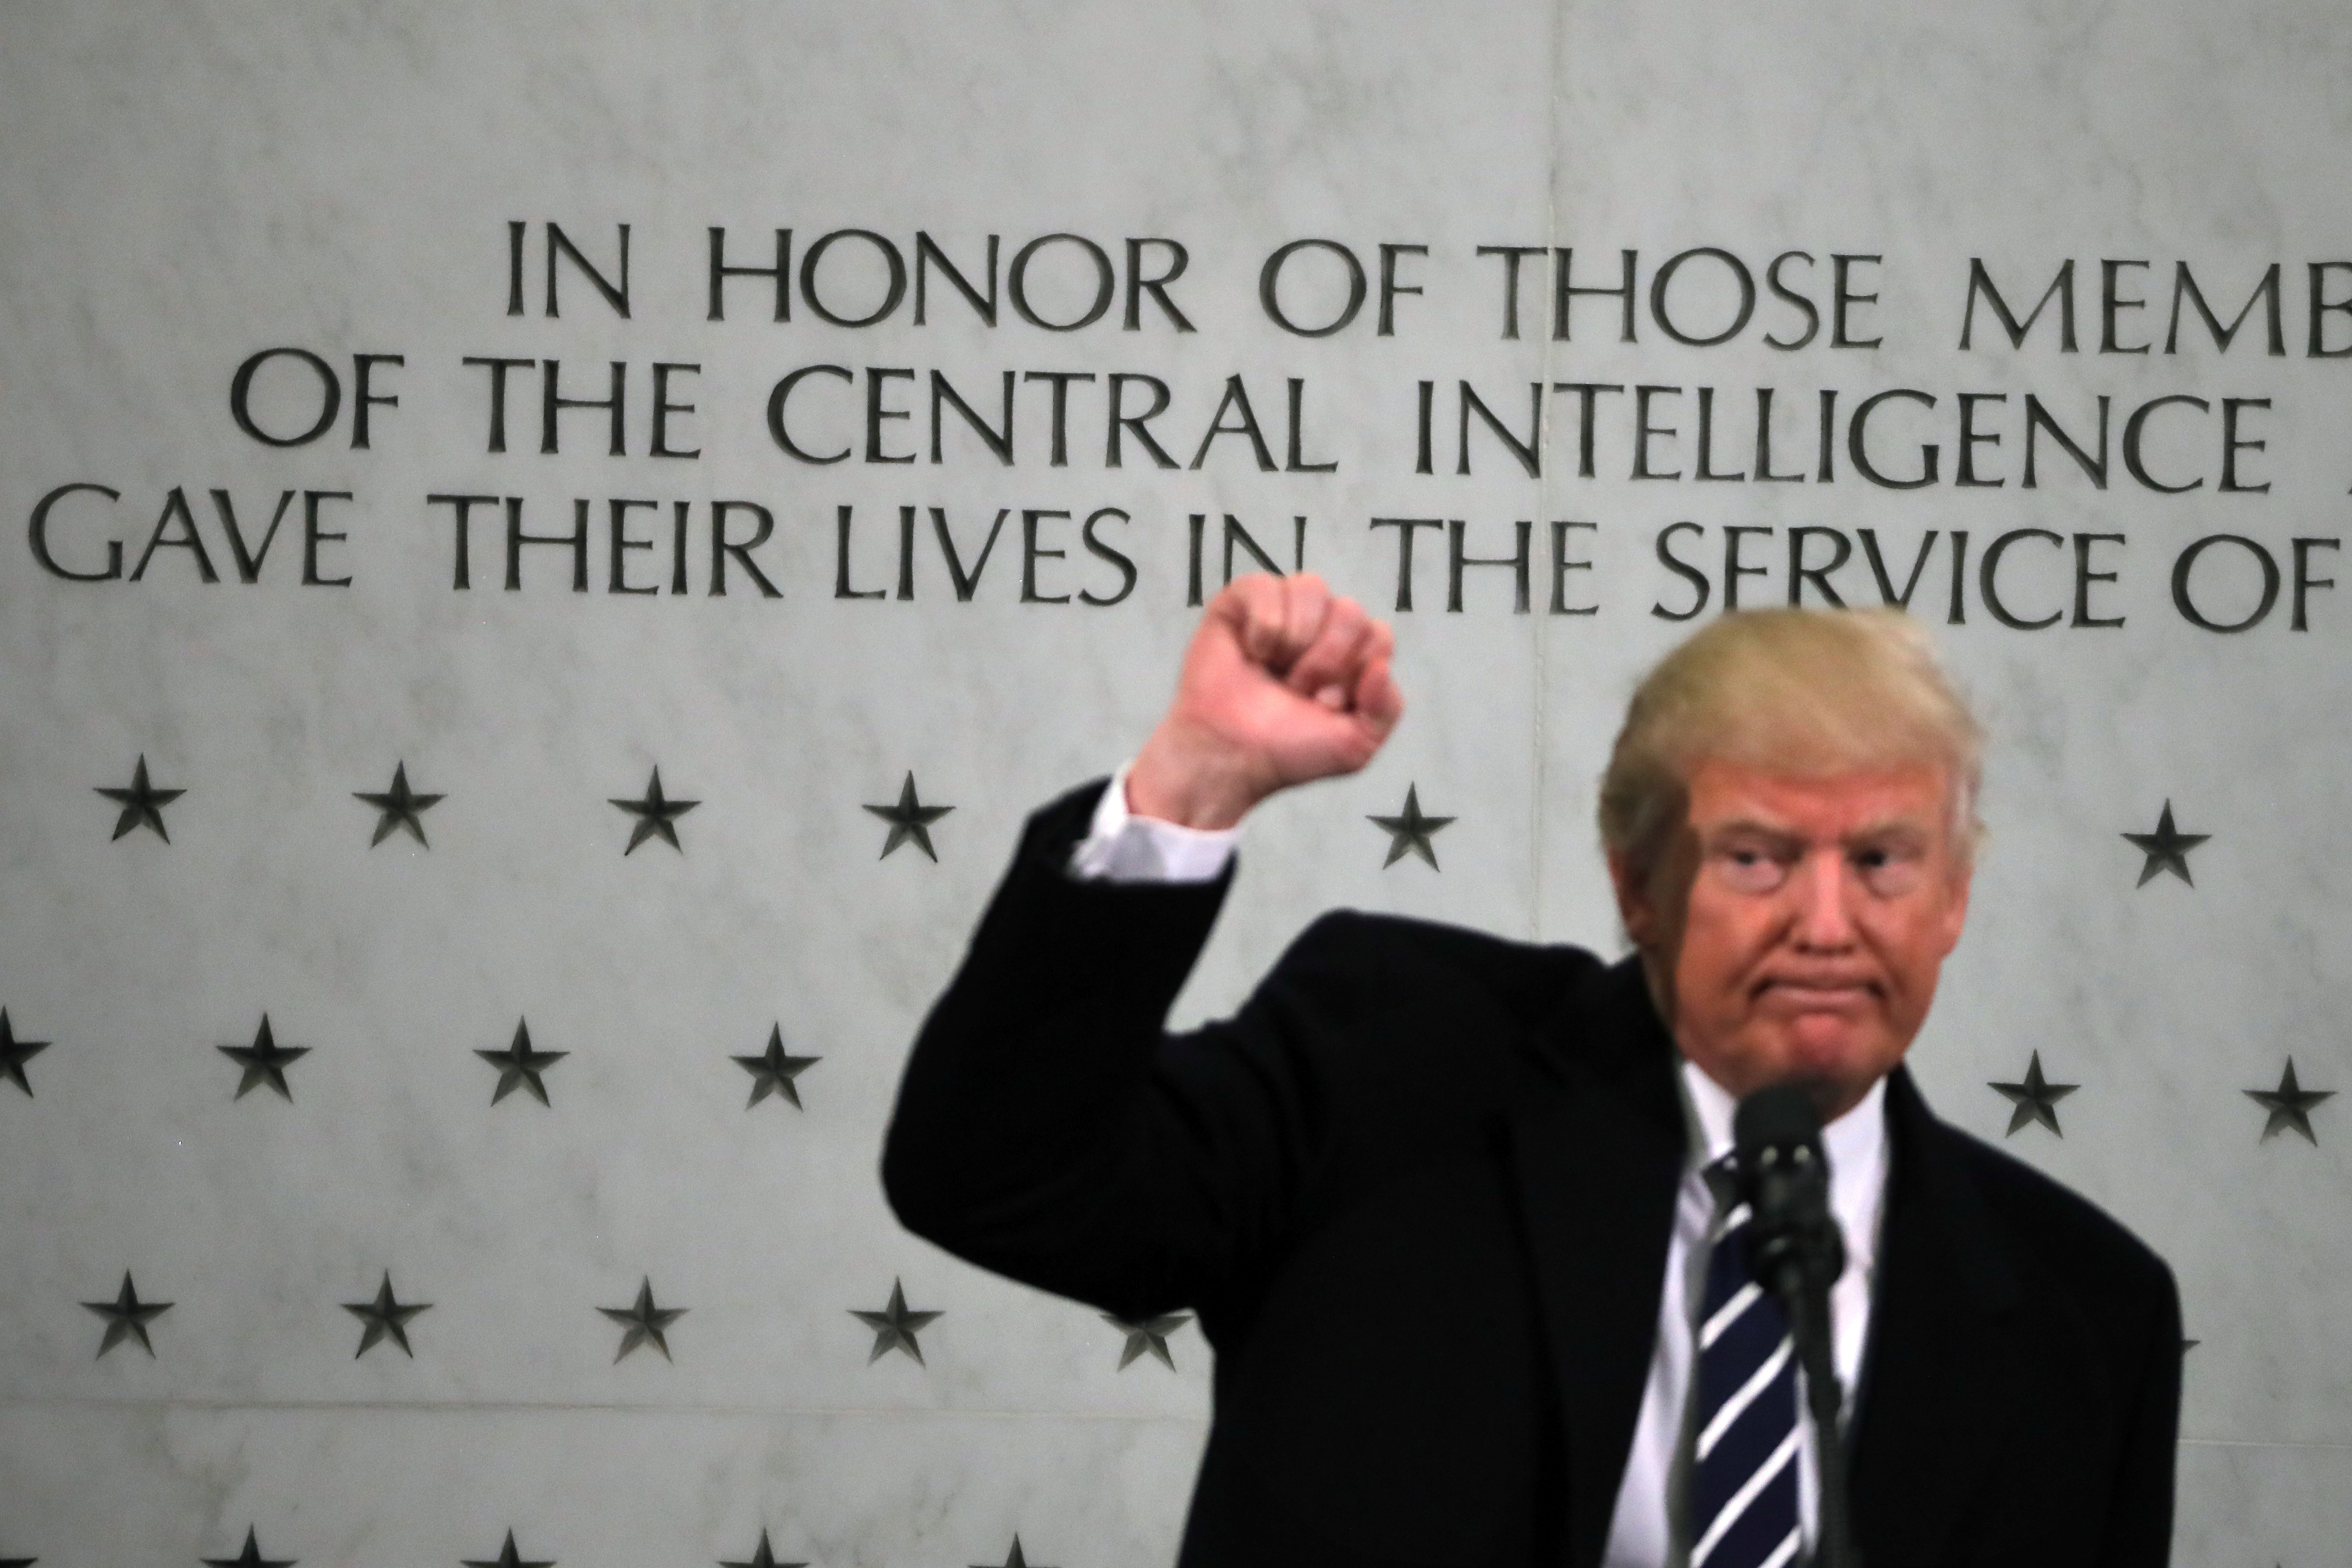 When President Trump spoke at CIA headquarters in Langley, Virginia in January, he reportedly brought along his own staff to clap and cheer.